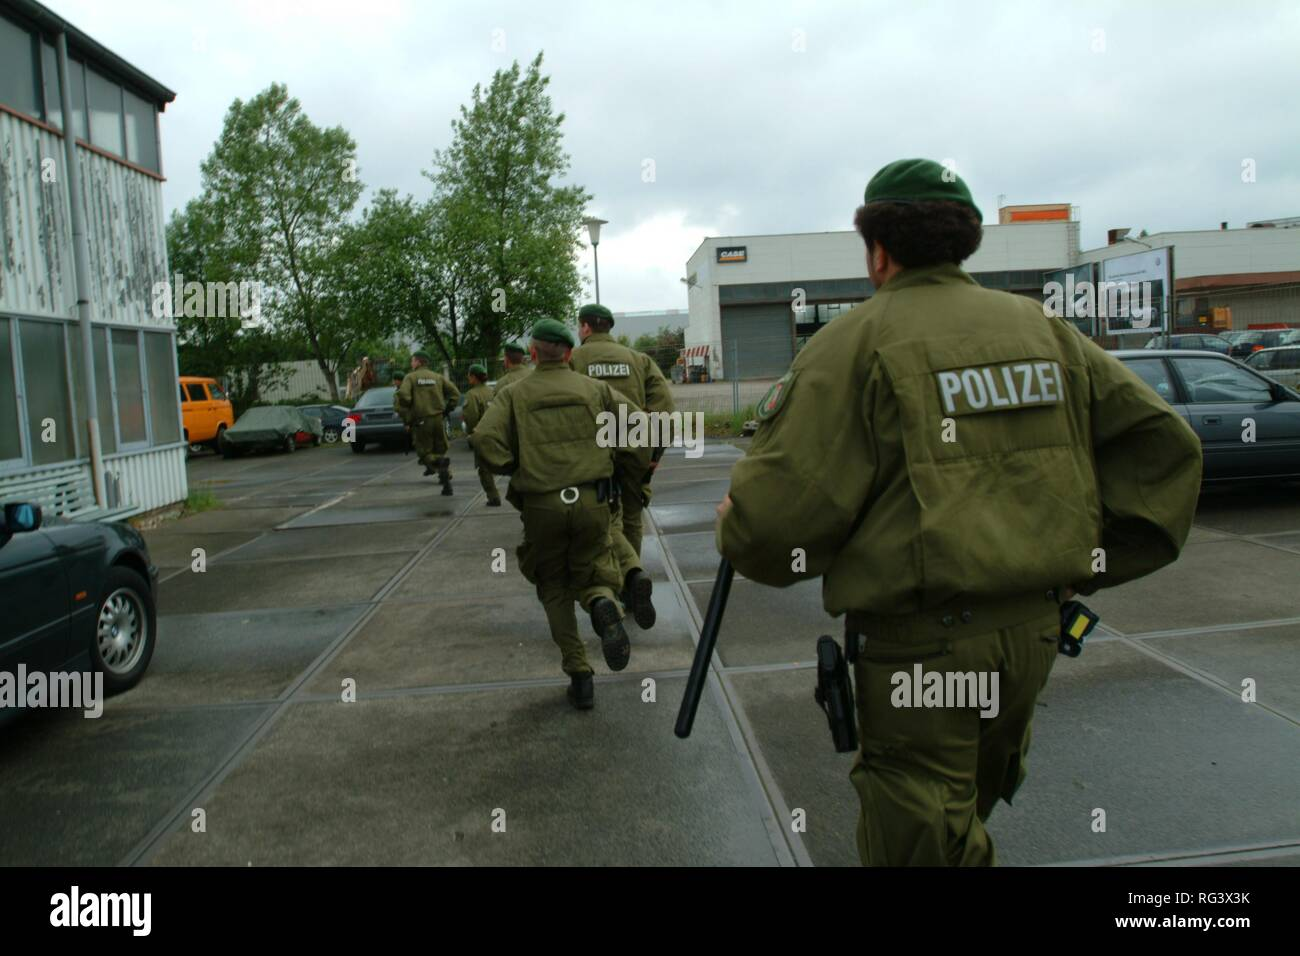 DEU, Germany : Police raid, anti riot units storming a building, early in the morning during the search of some criminals. - Stock Image